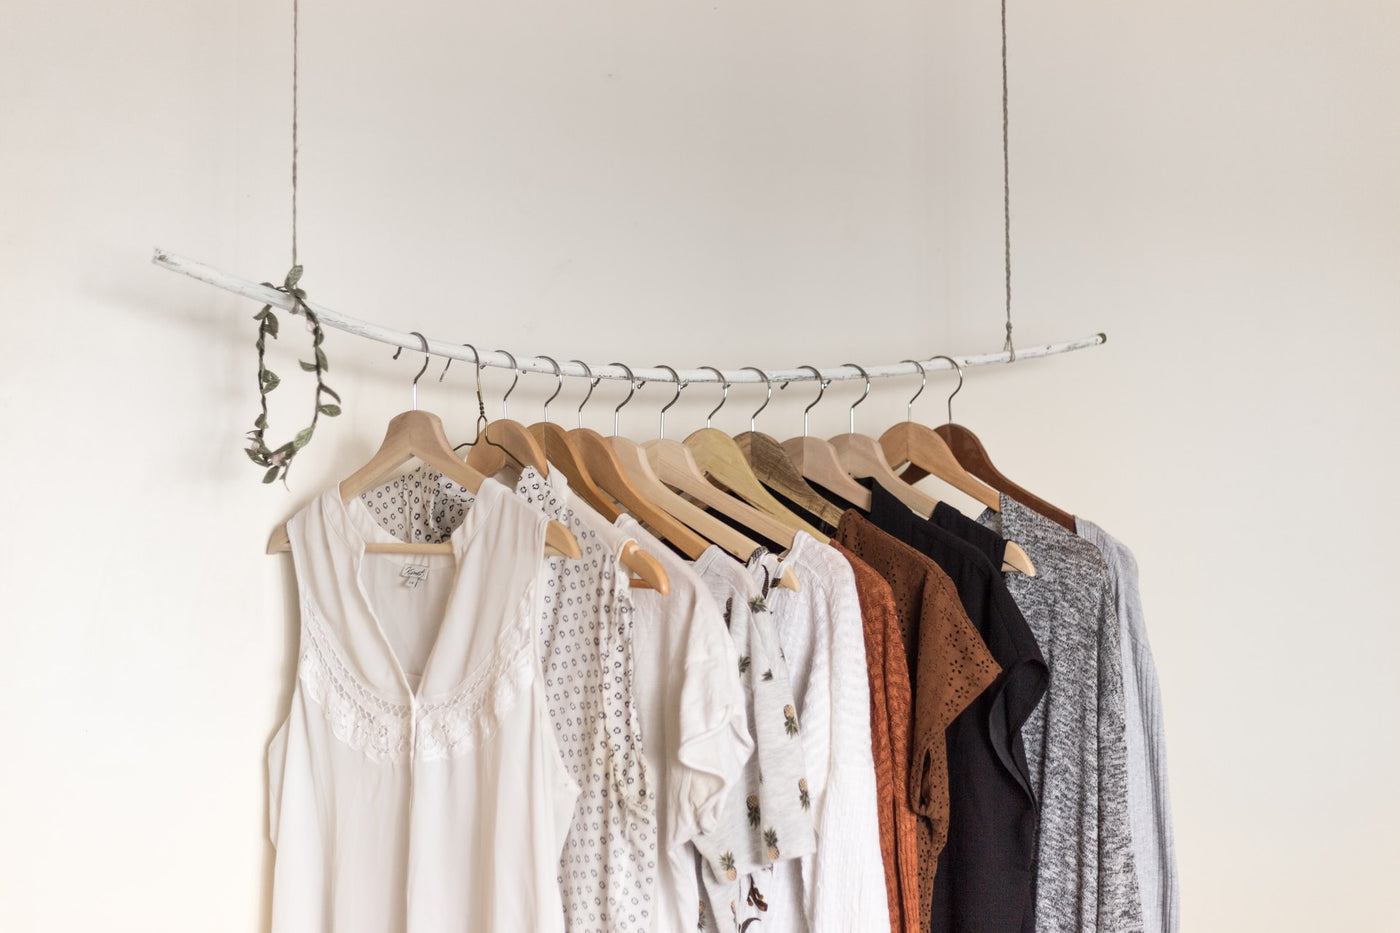 11 Ways to Recycle Your Old Clothes